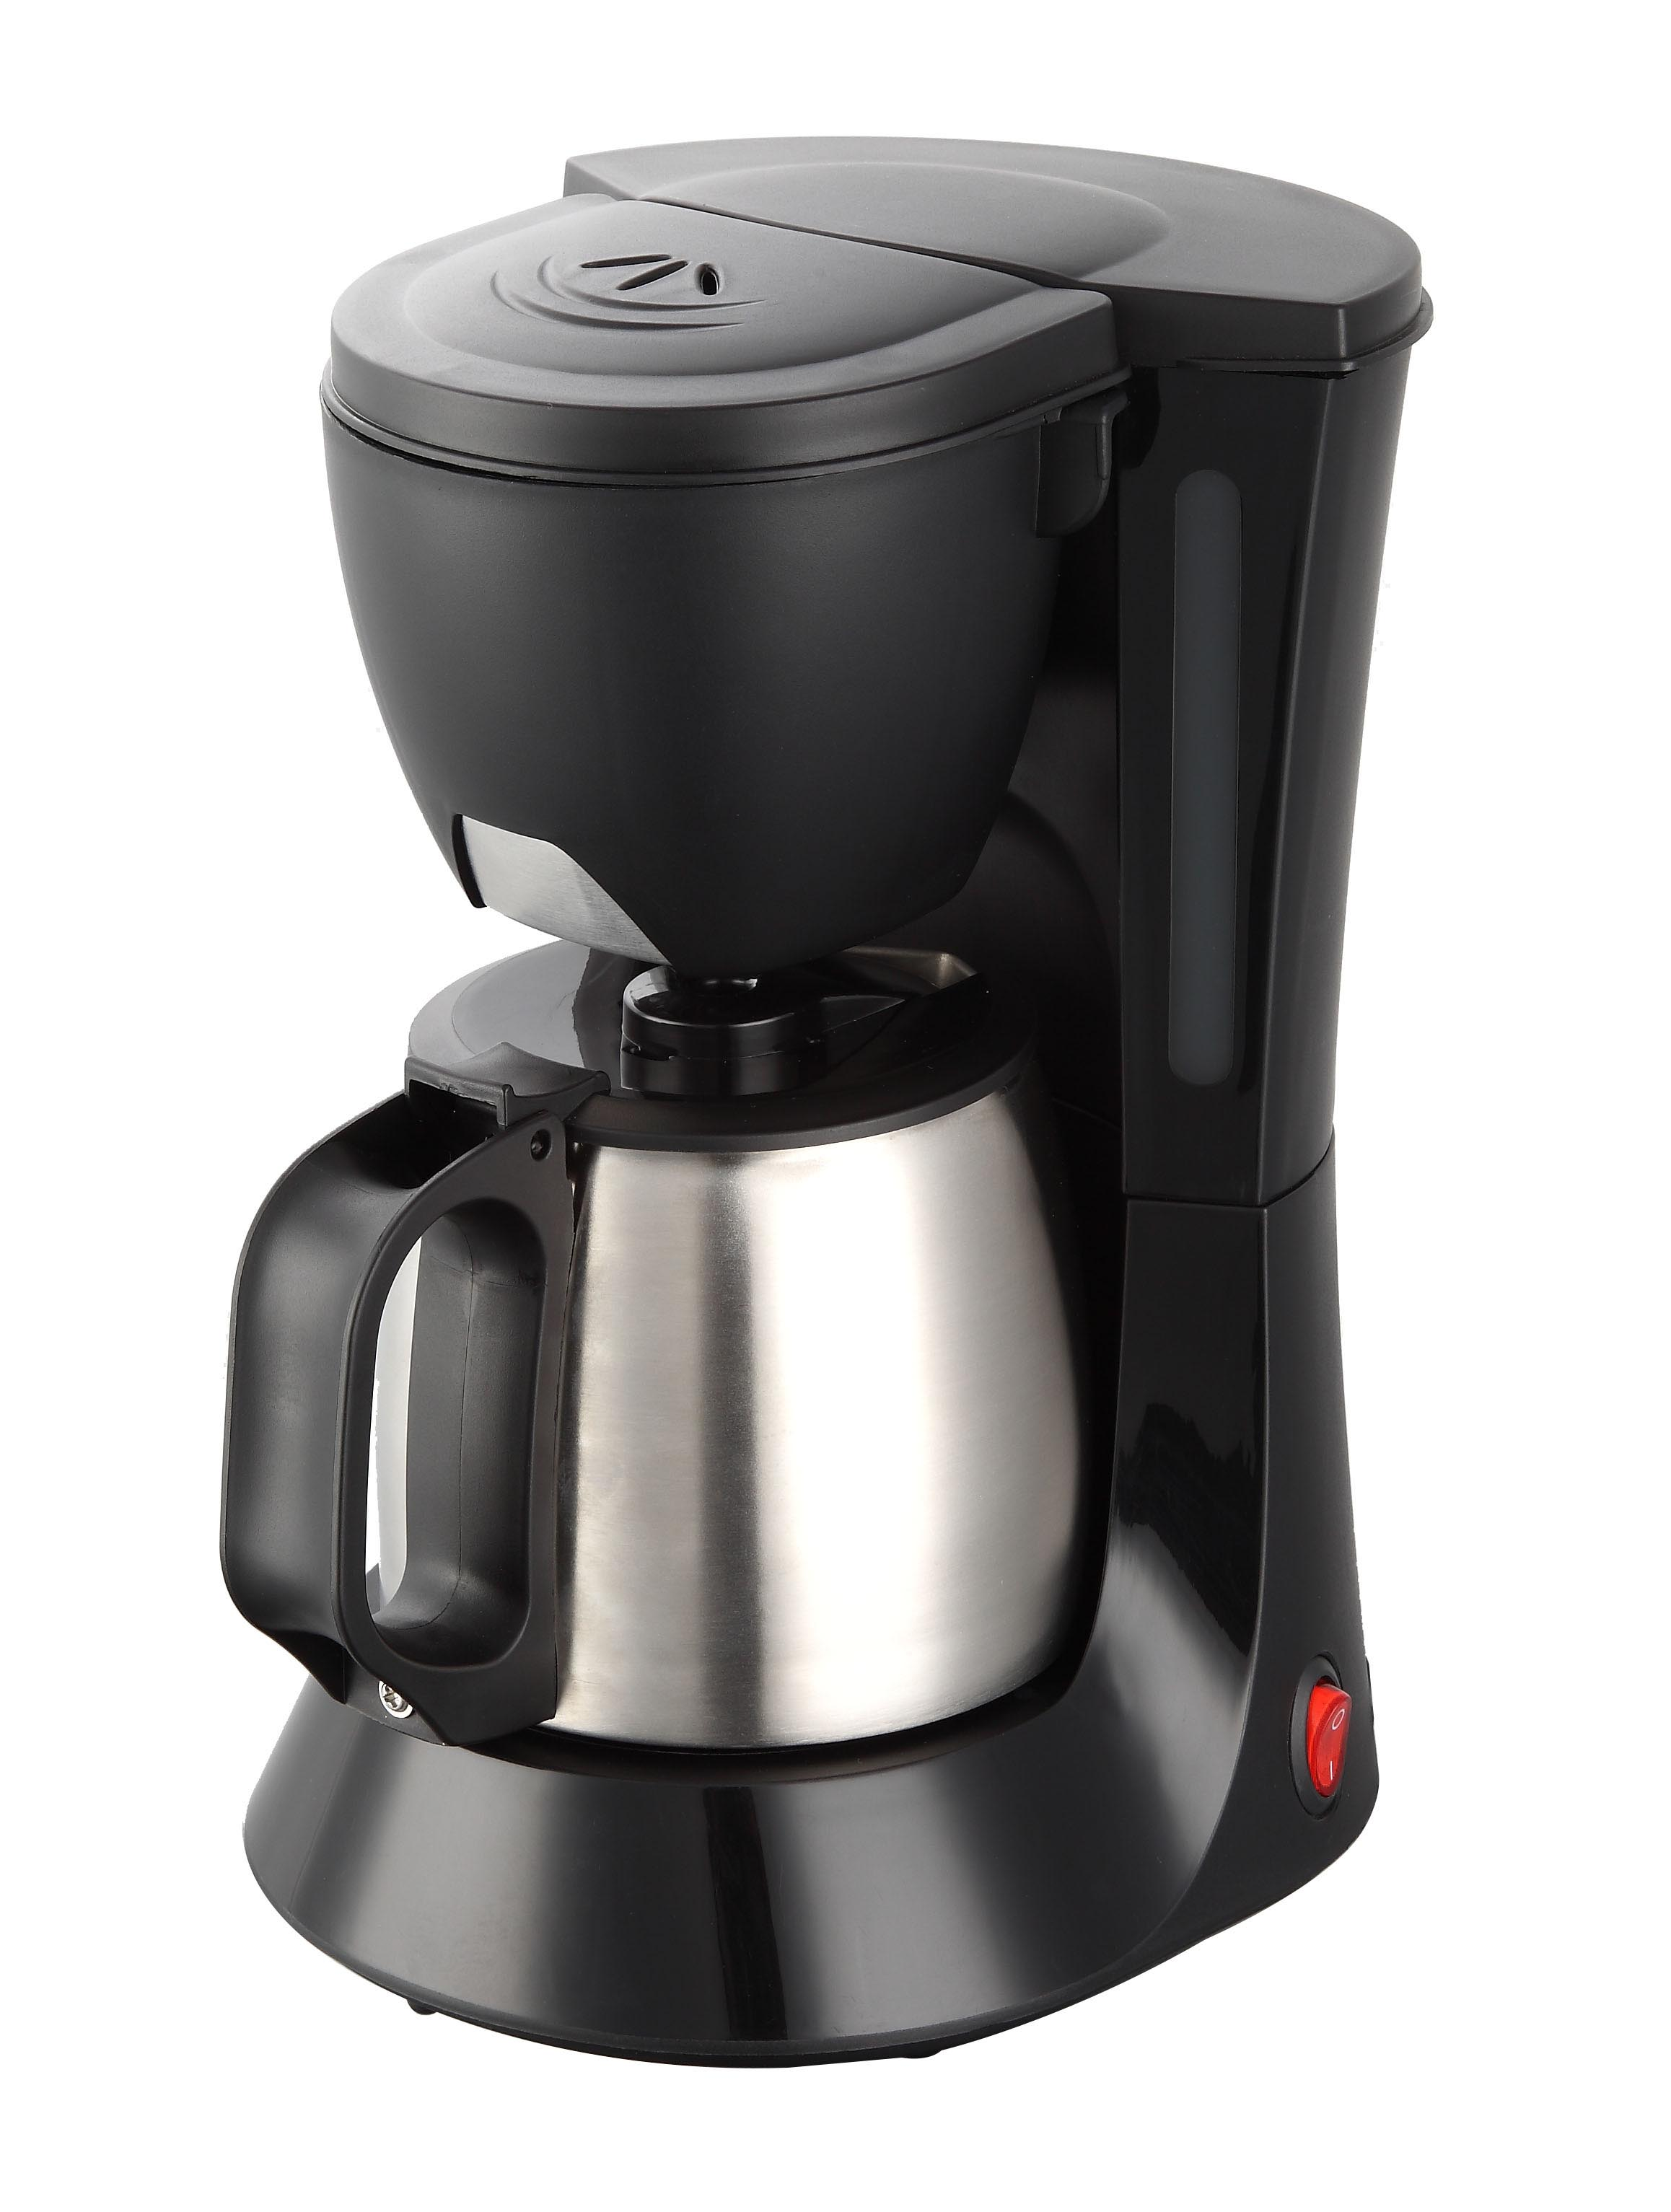 4-6 Cups Coffee Maker